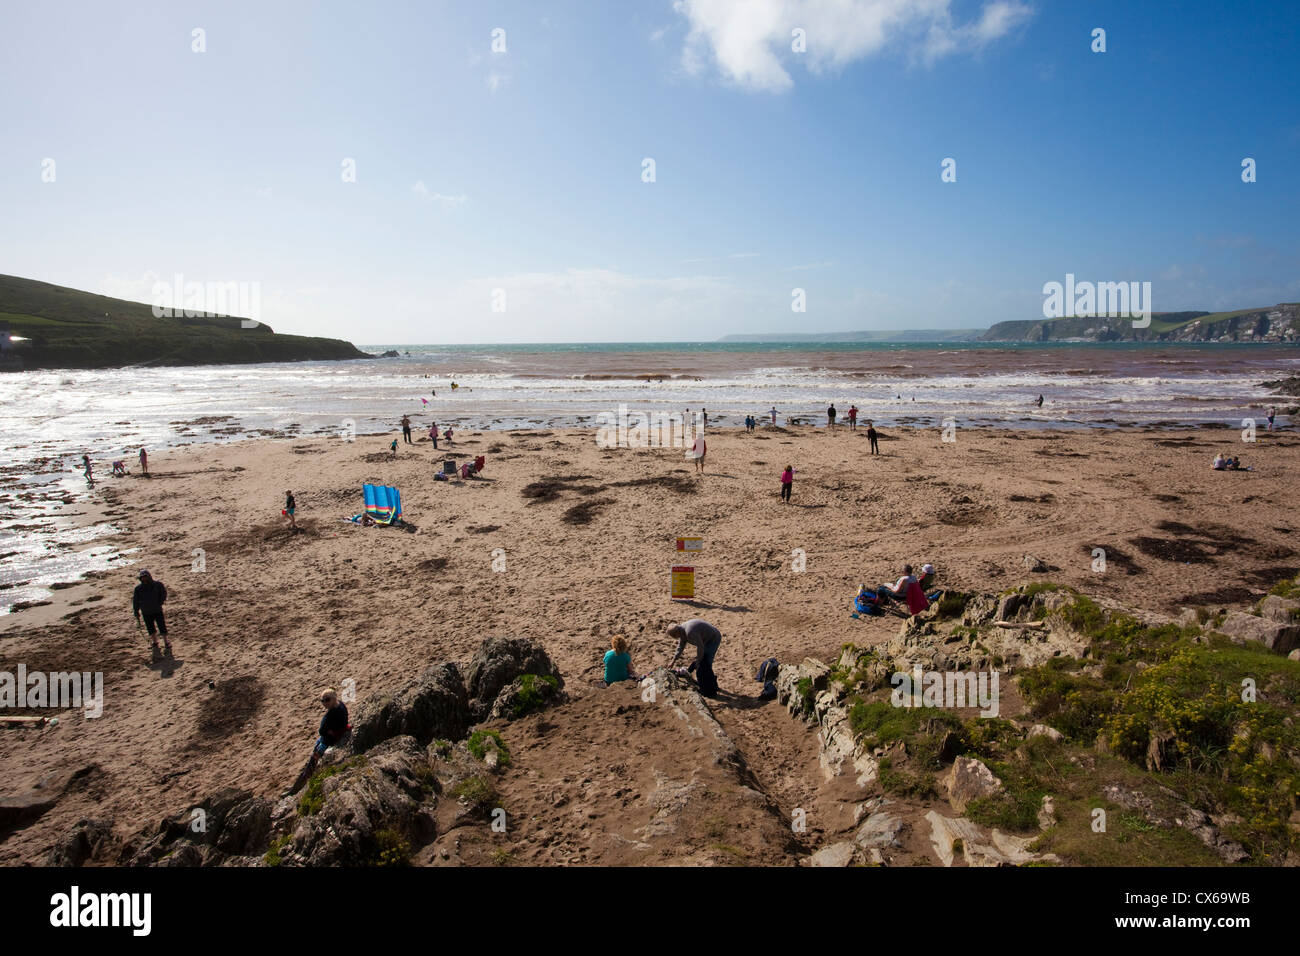 Coastal beach at Bigbury Bay, Bigbury-On-Sea looking out towards Burgh Island, Devon, England, UK - Stock Image